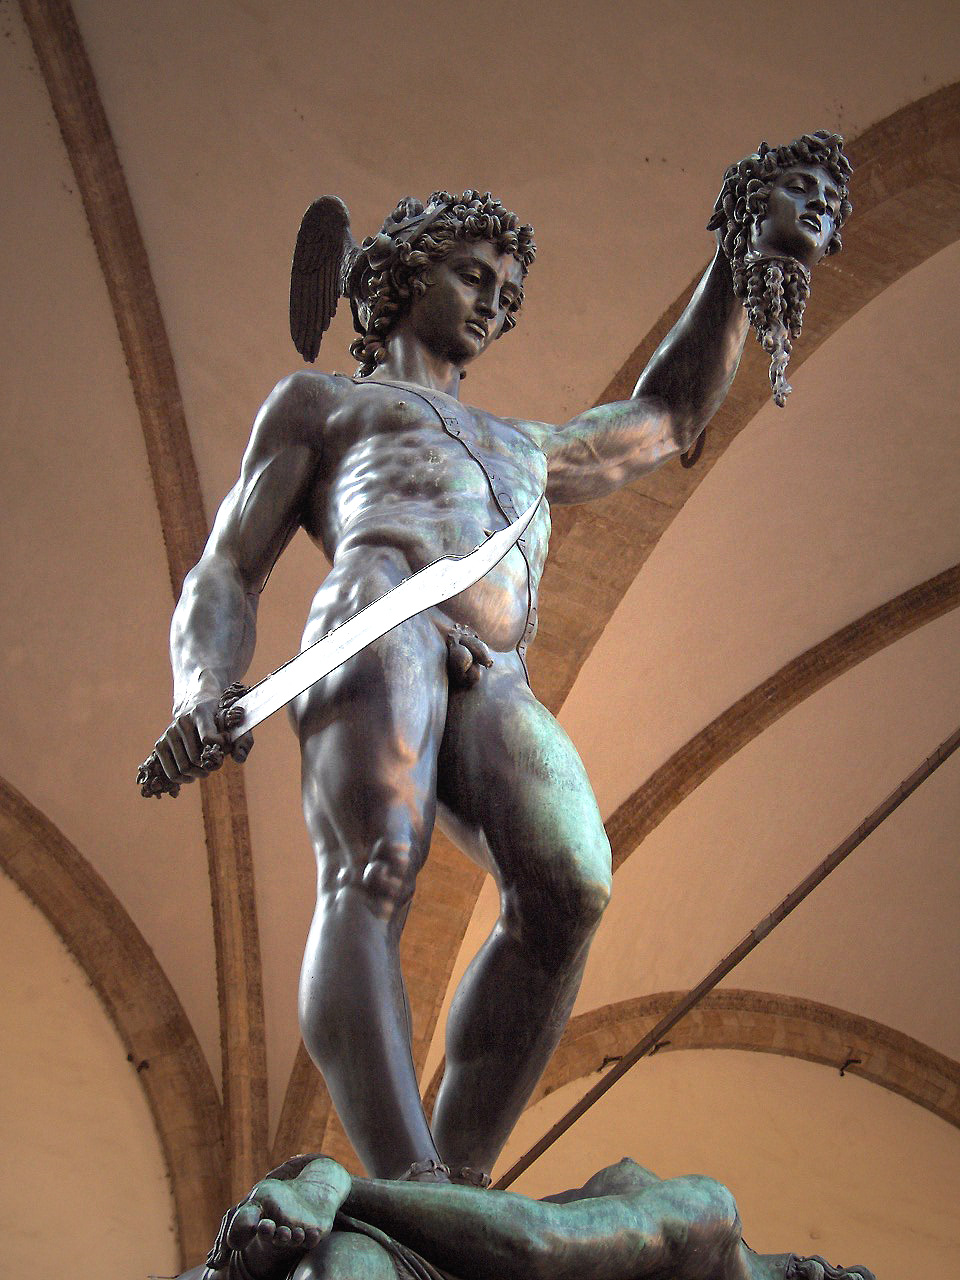 A Renaissance sculpture of Perseus holding the head of Medussa